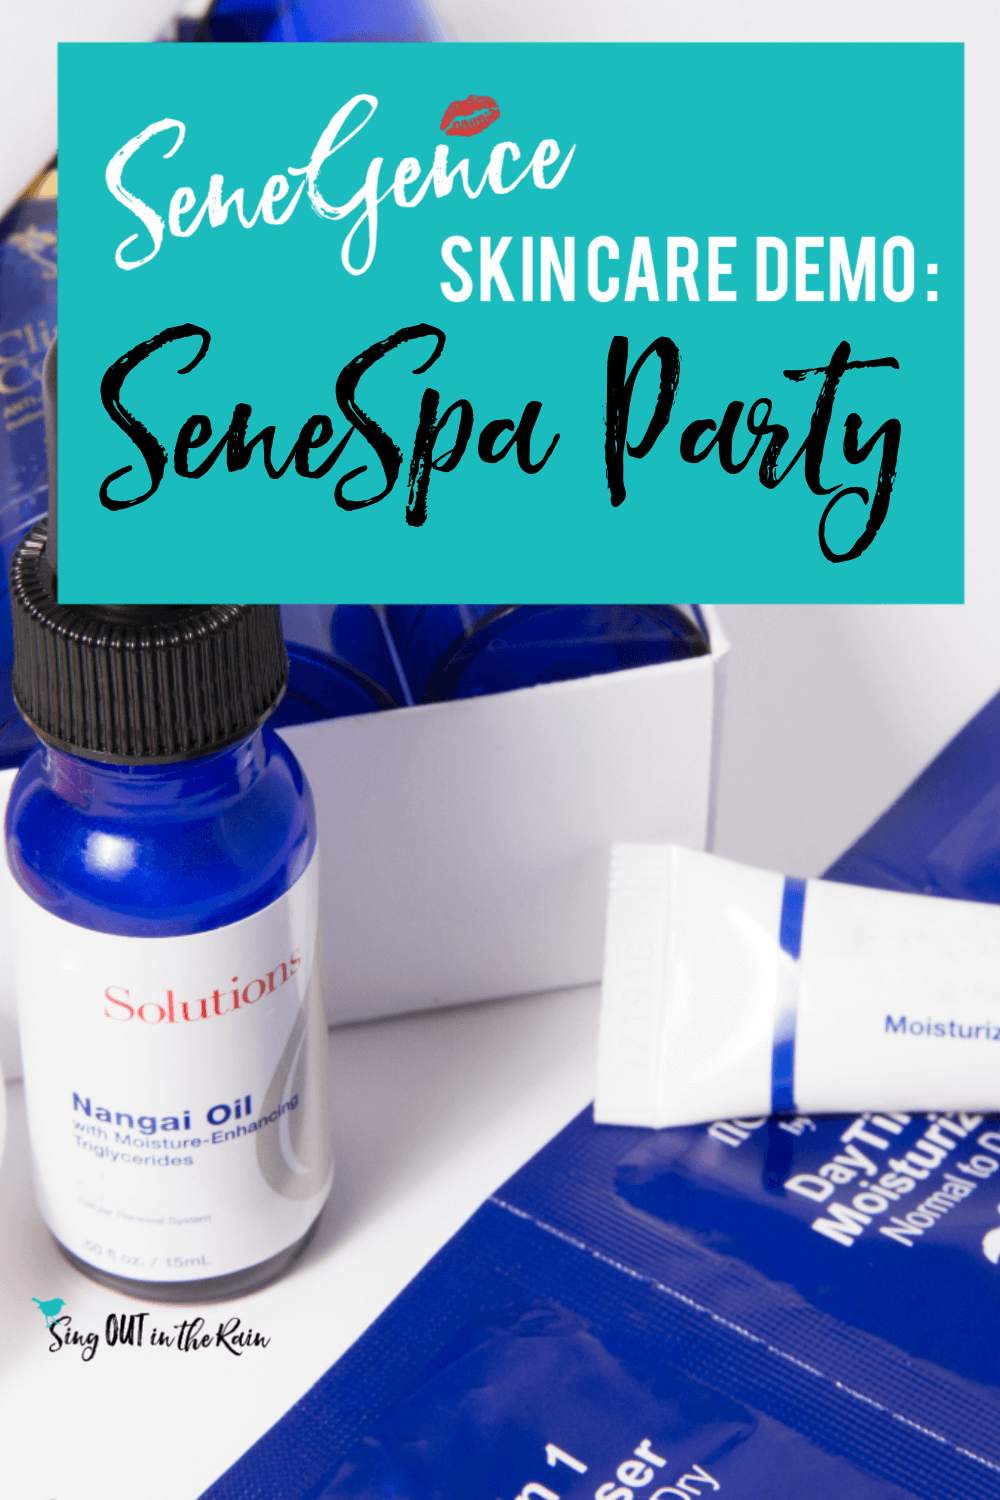 Level up with this SeneGence Skincare Party including: graphics, set up, display, and invites.  Whether a launch for a new distributor or a seasoned consultant - no games needed.  These ideas will fill your calendar FAST! Learn to demo, offer the skincare quiz and PARTY like a SeneSister!  #senegence #skincare #skincaredemo #senespaparty #spaparty